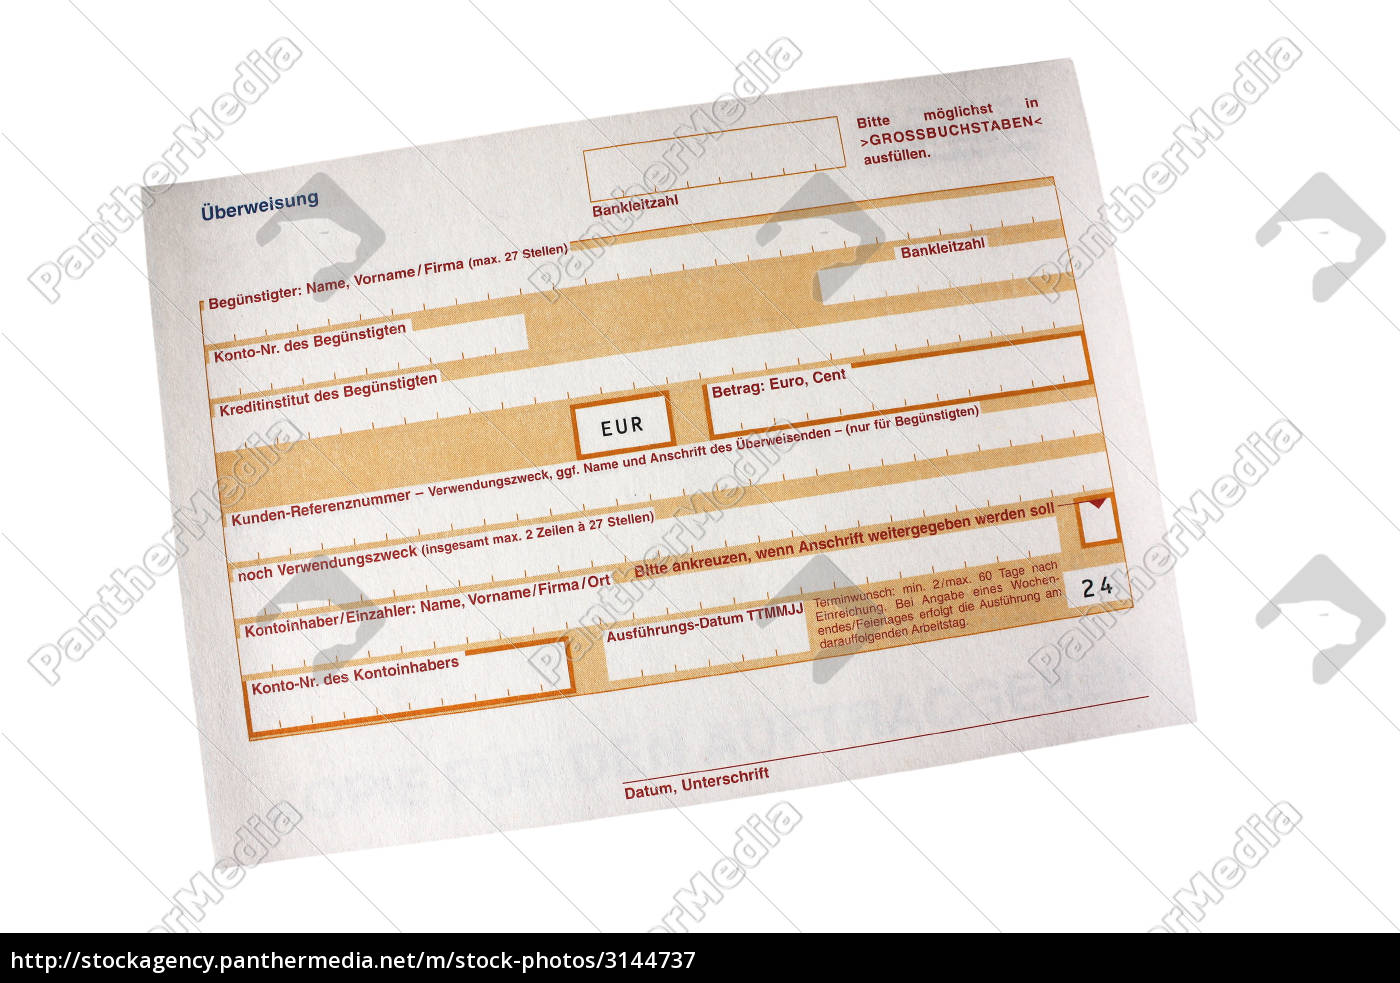 bank, lending institution, transferal, form, printed form, savings bank - 3144737